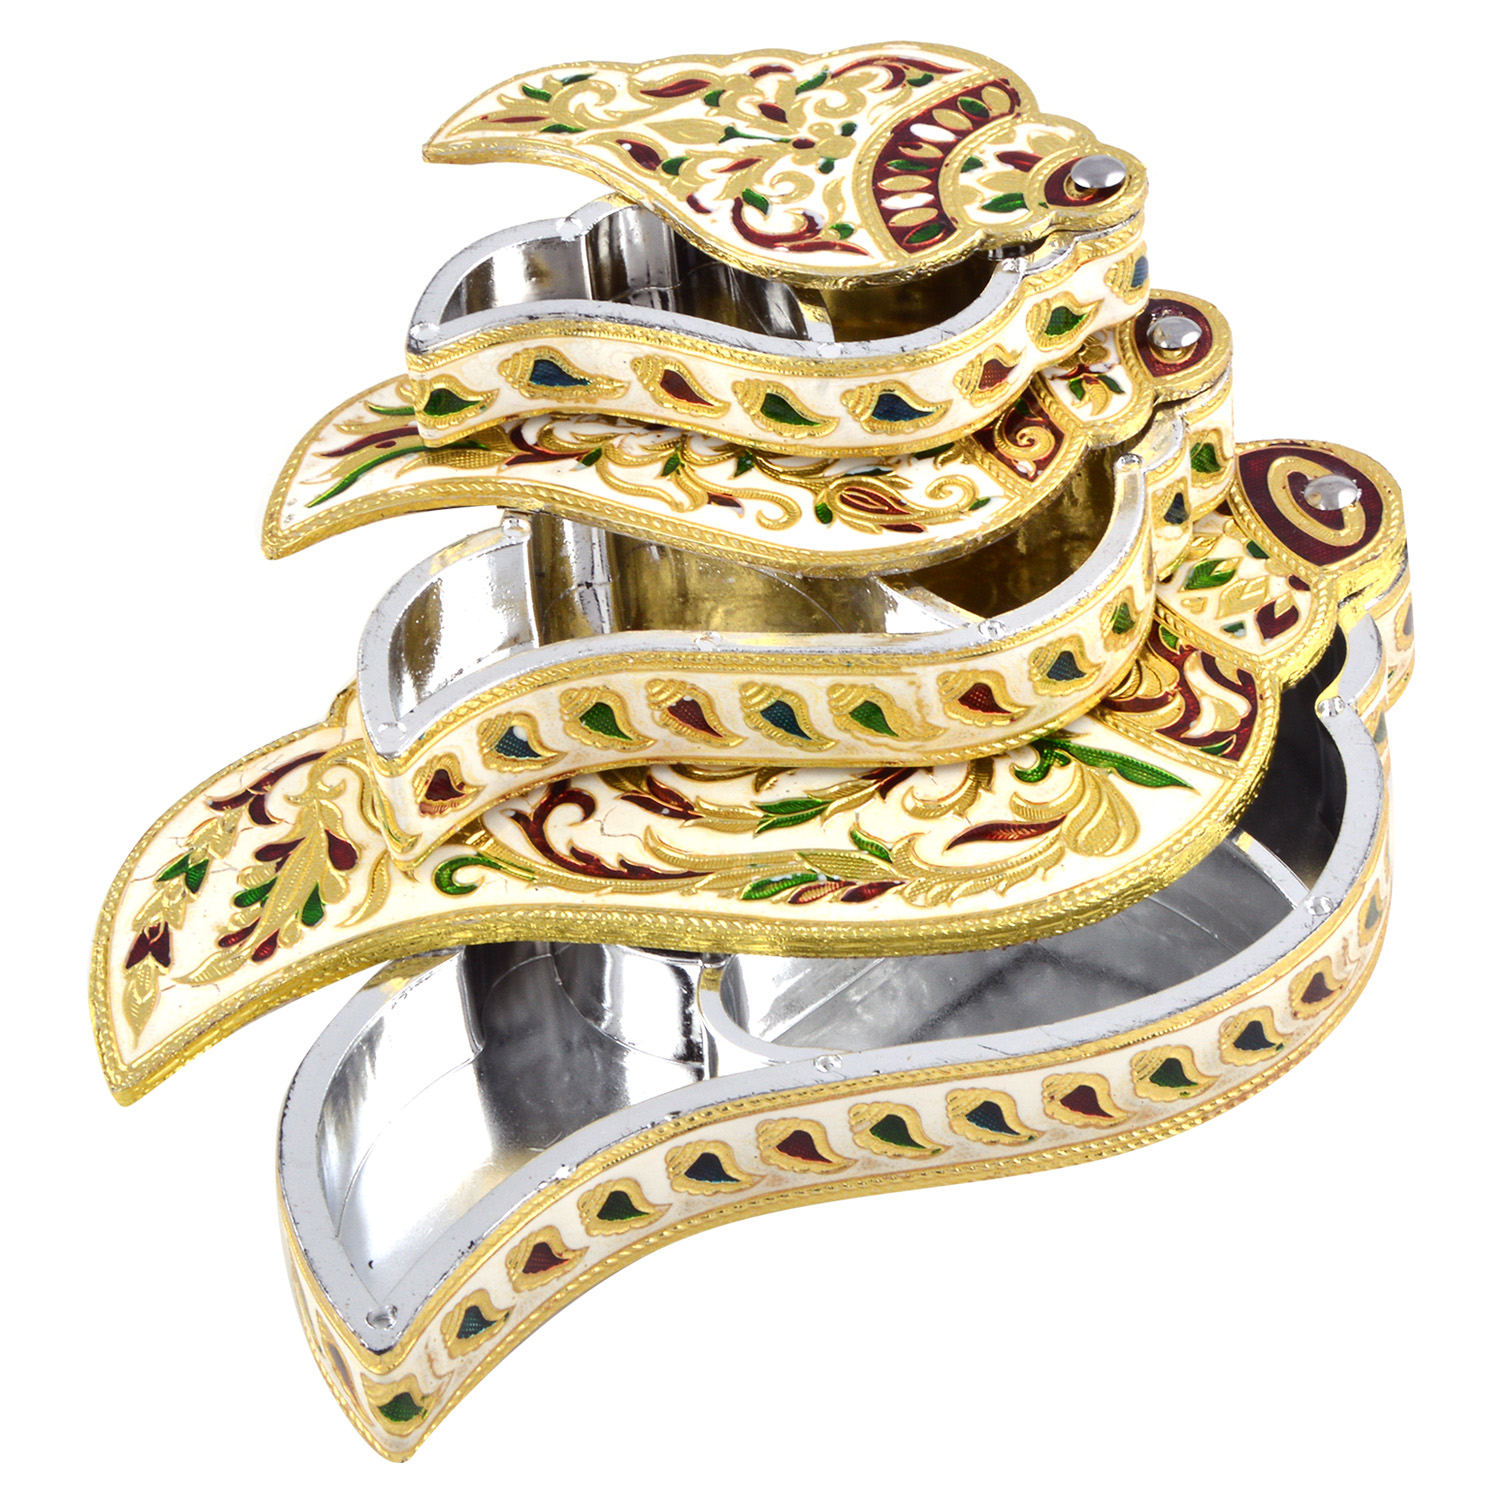 JK Handicraft Set Of 3 Shankh Shaped Golden White Meena Dry Fruit/ Multipurpose Box  (20cmX20cmX4cm)